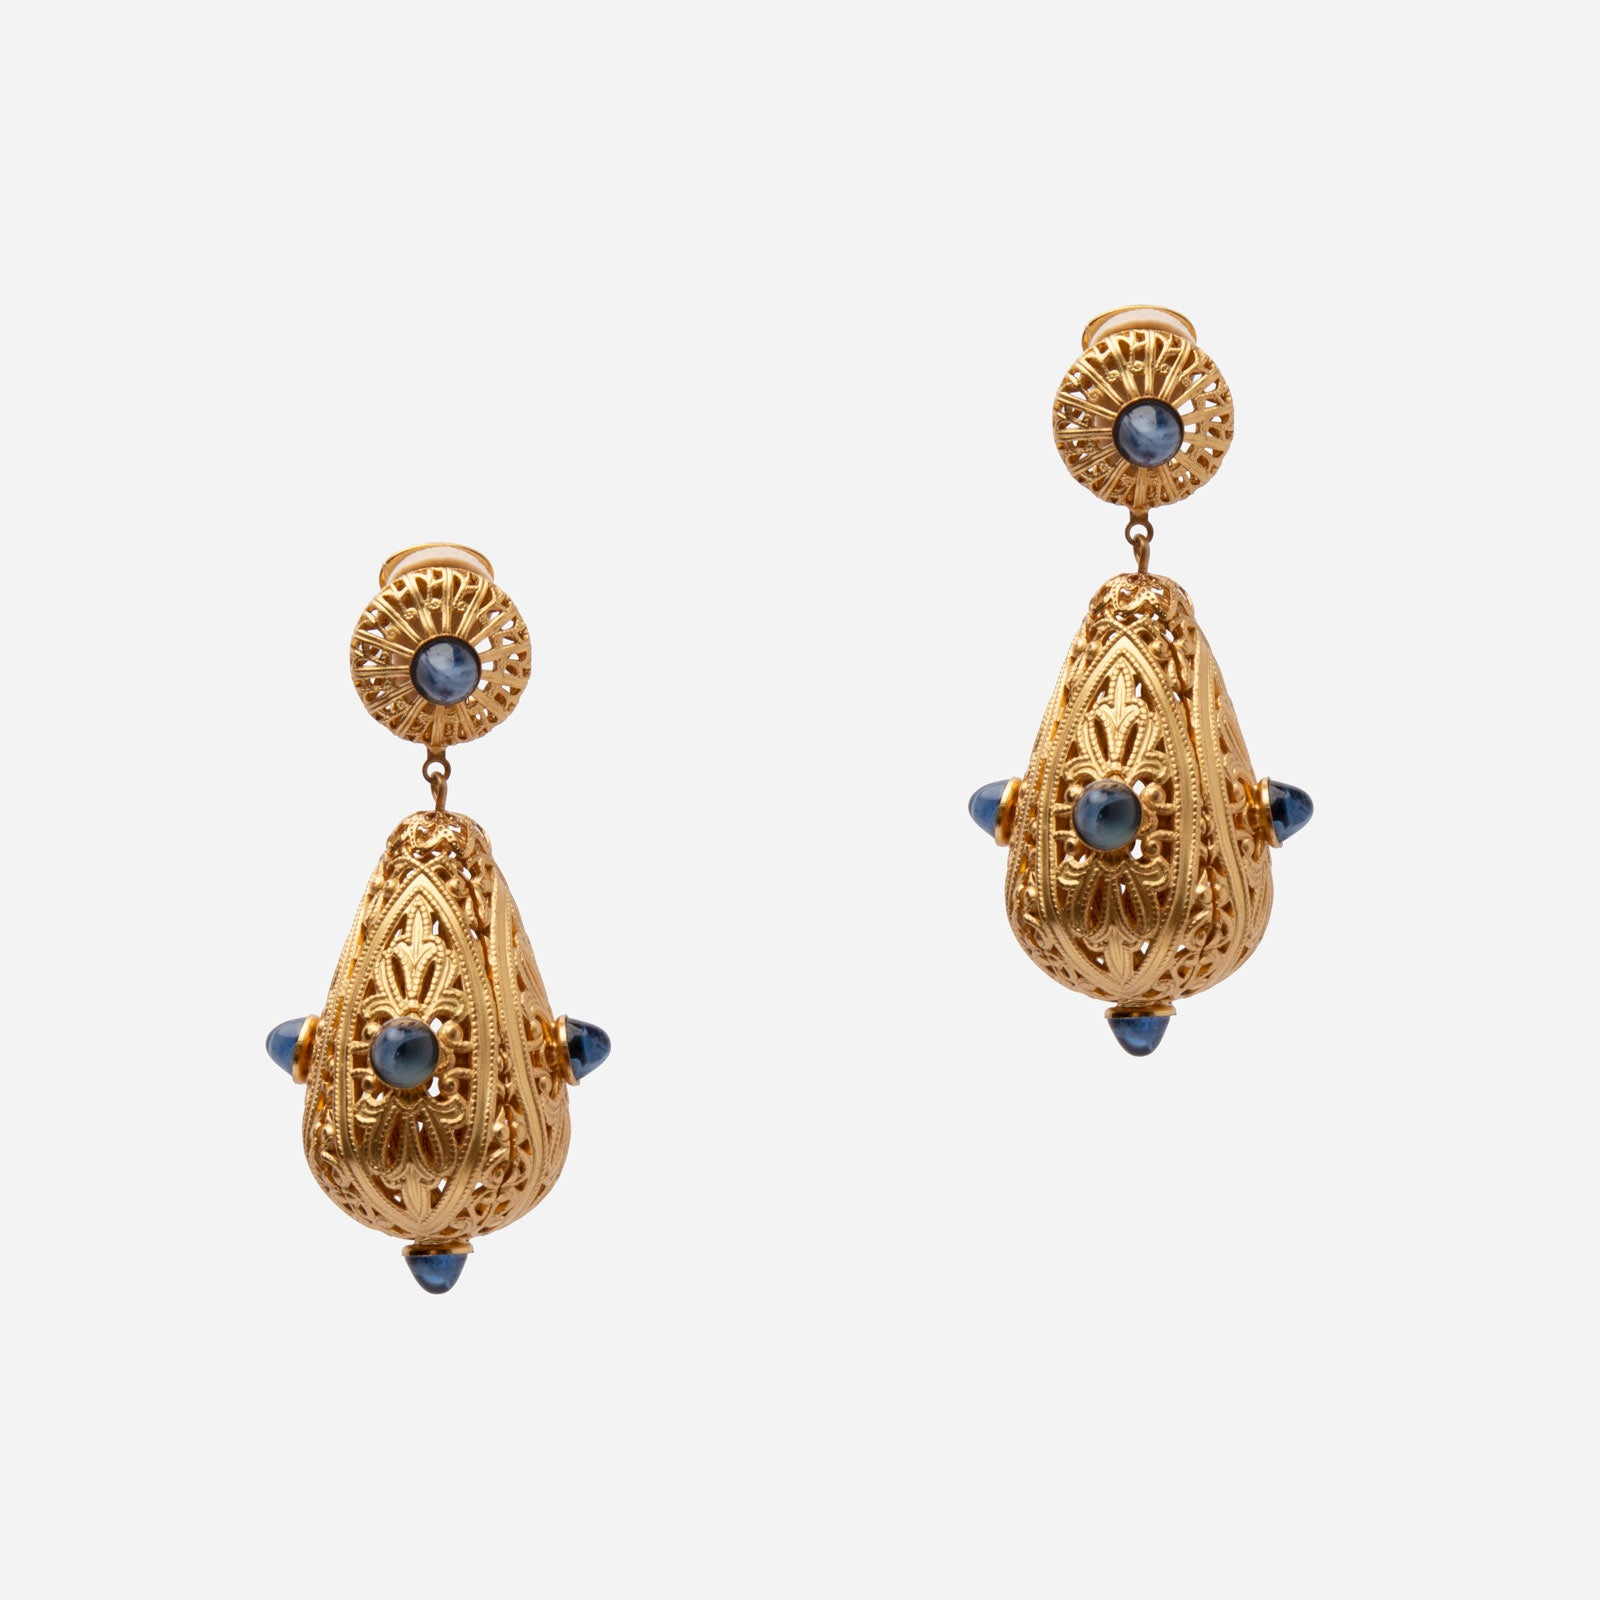 Sapphire Dome Filigree Earrings